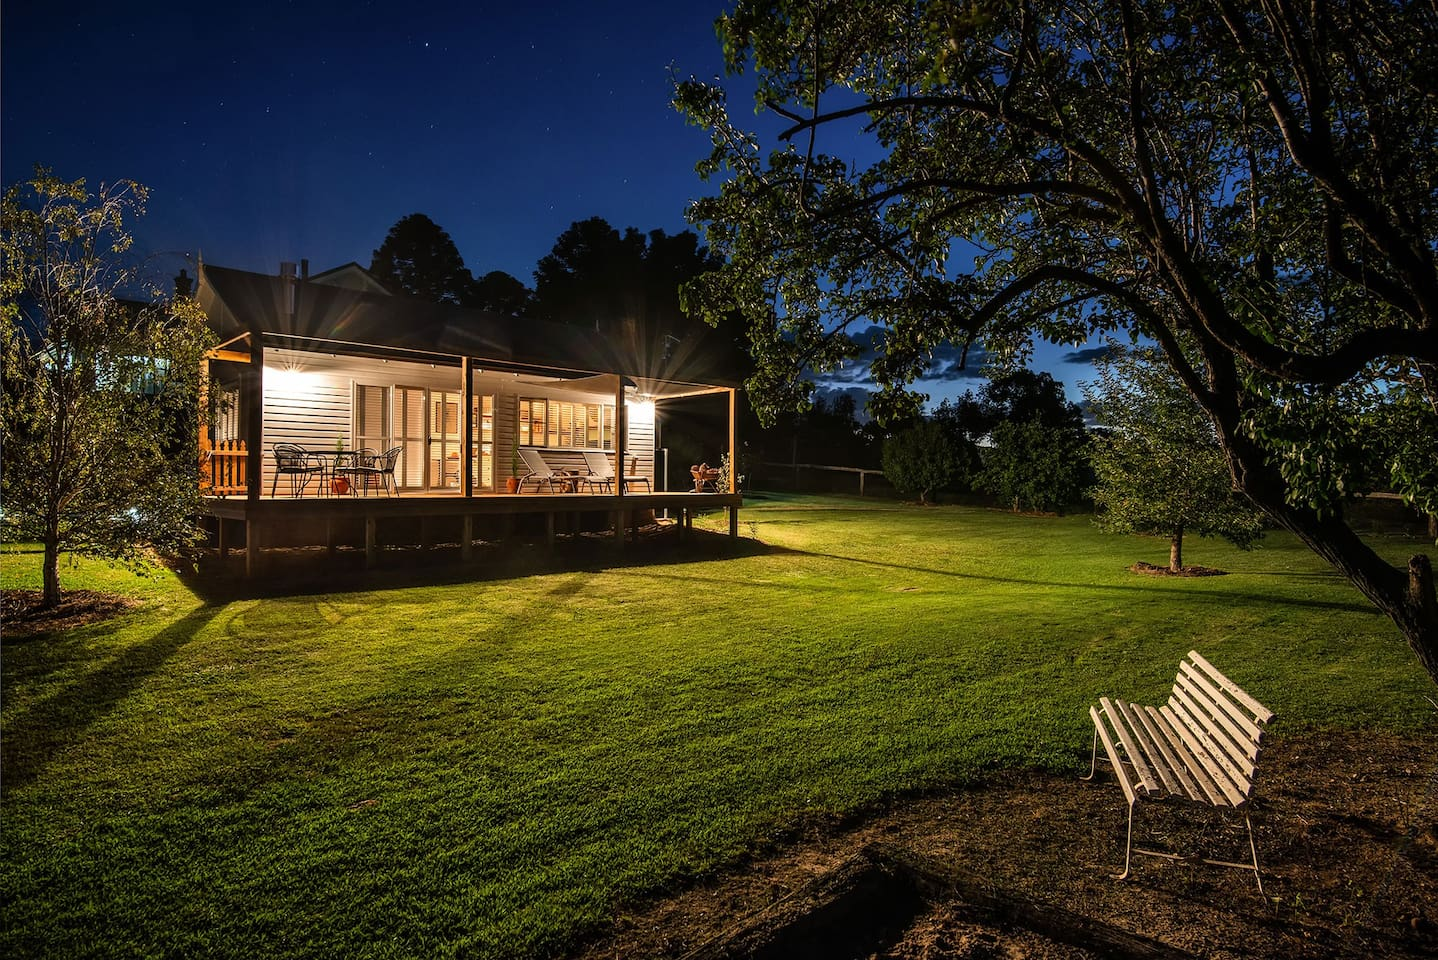 Tom's Cottage By Night